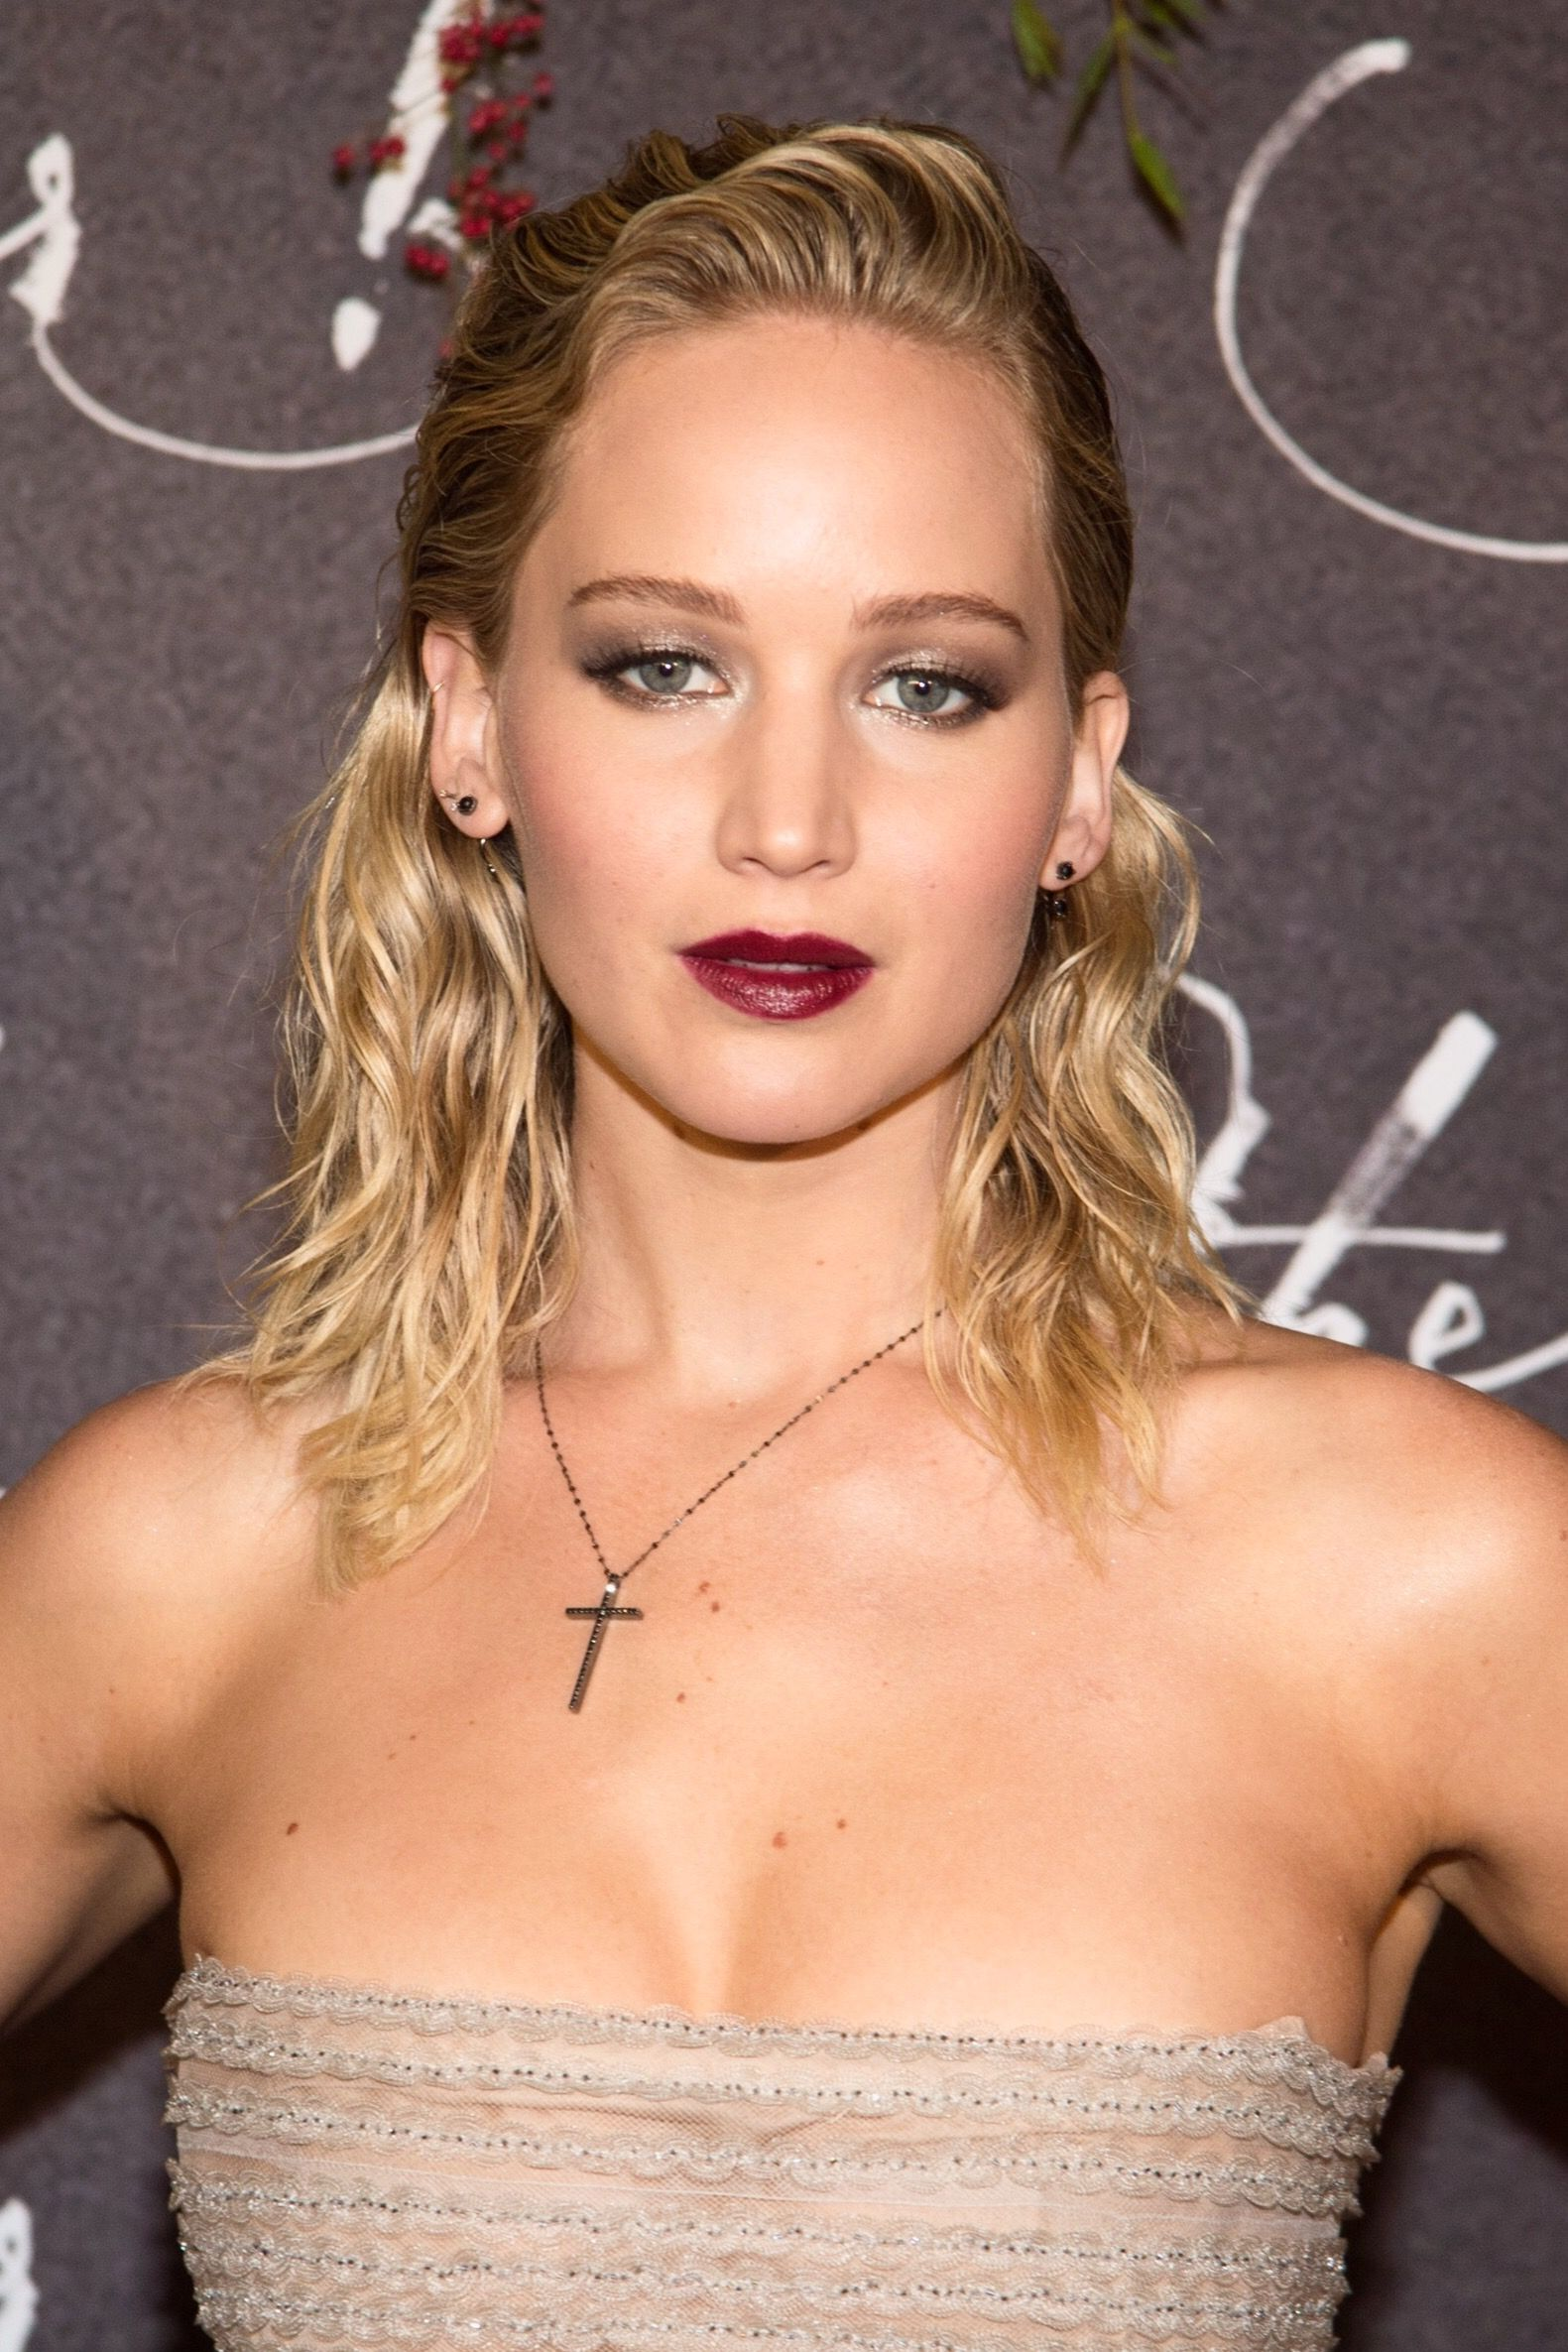 Jennifer Lawrence Mother! - 2019 - 2019 year